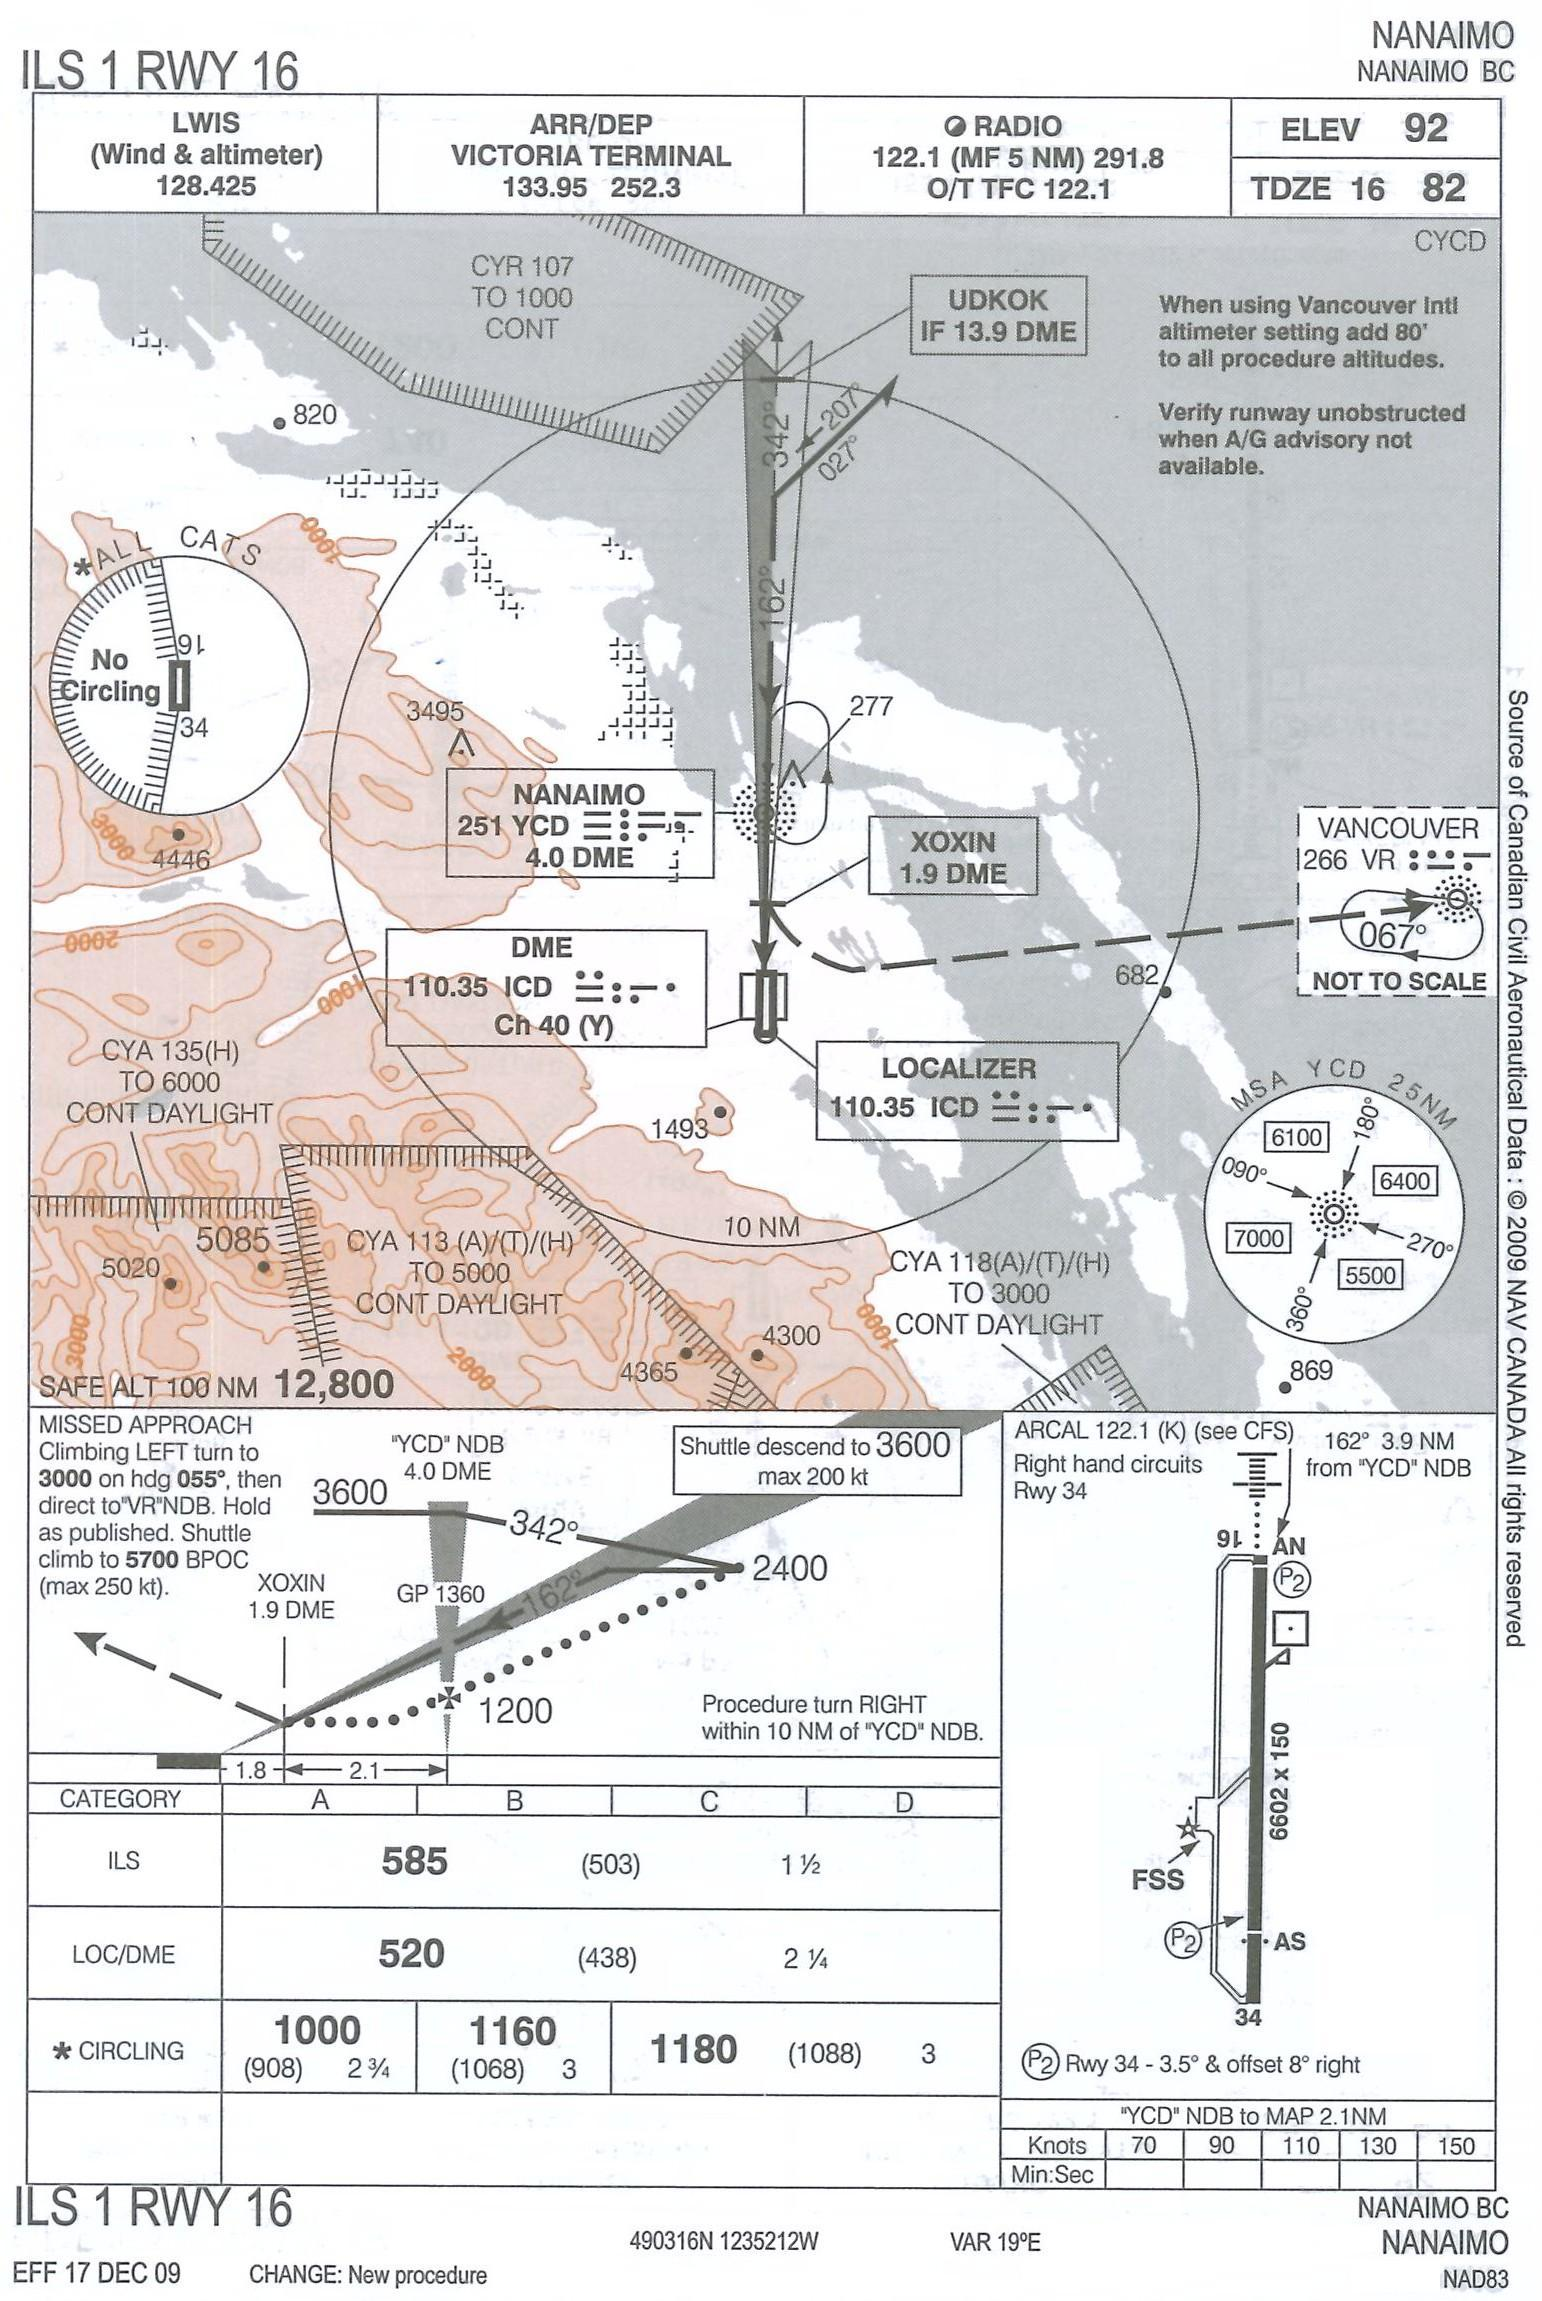 Nanaimo Airport ILS 1 RWY 16, Langley Flying School.